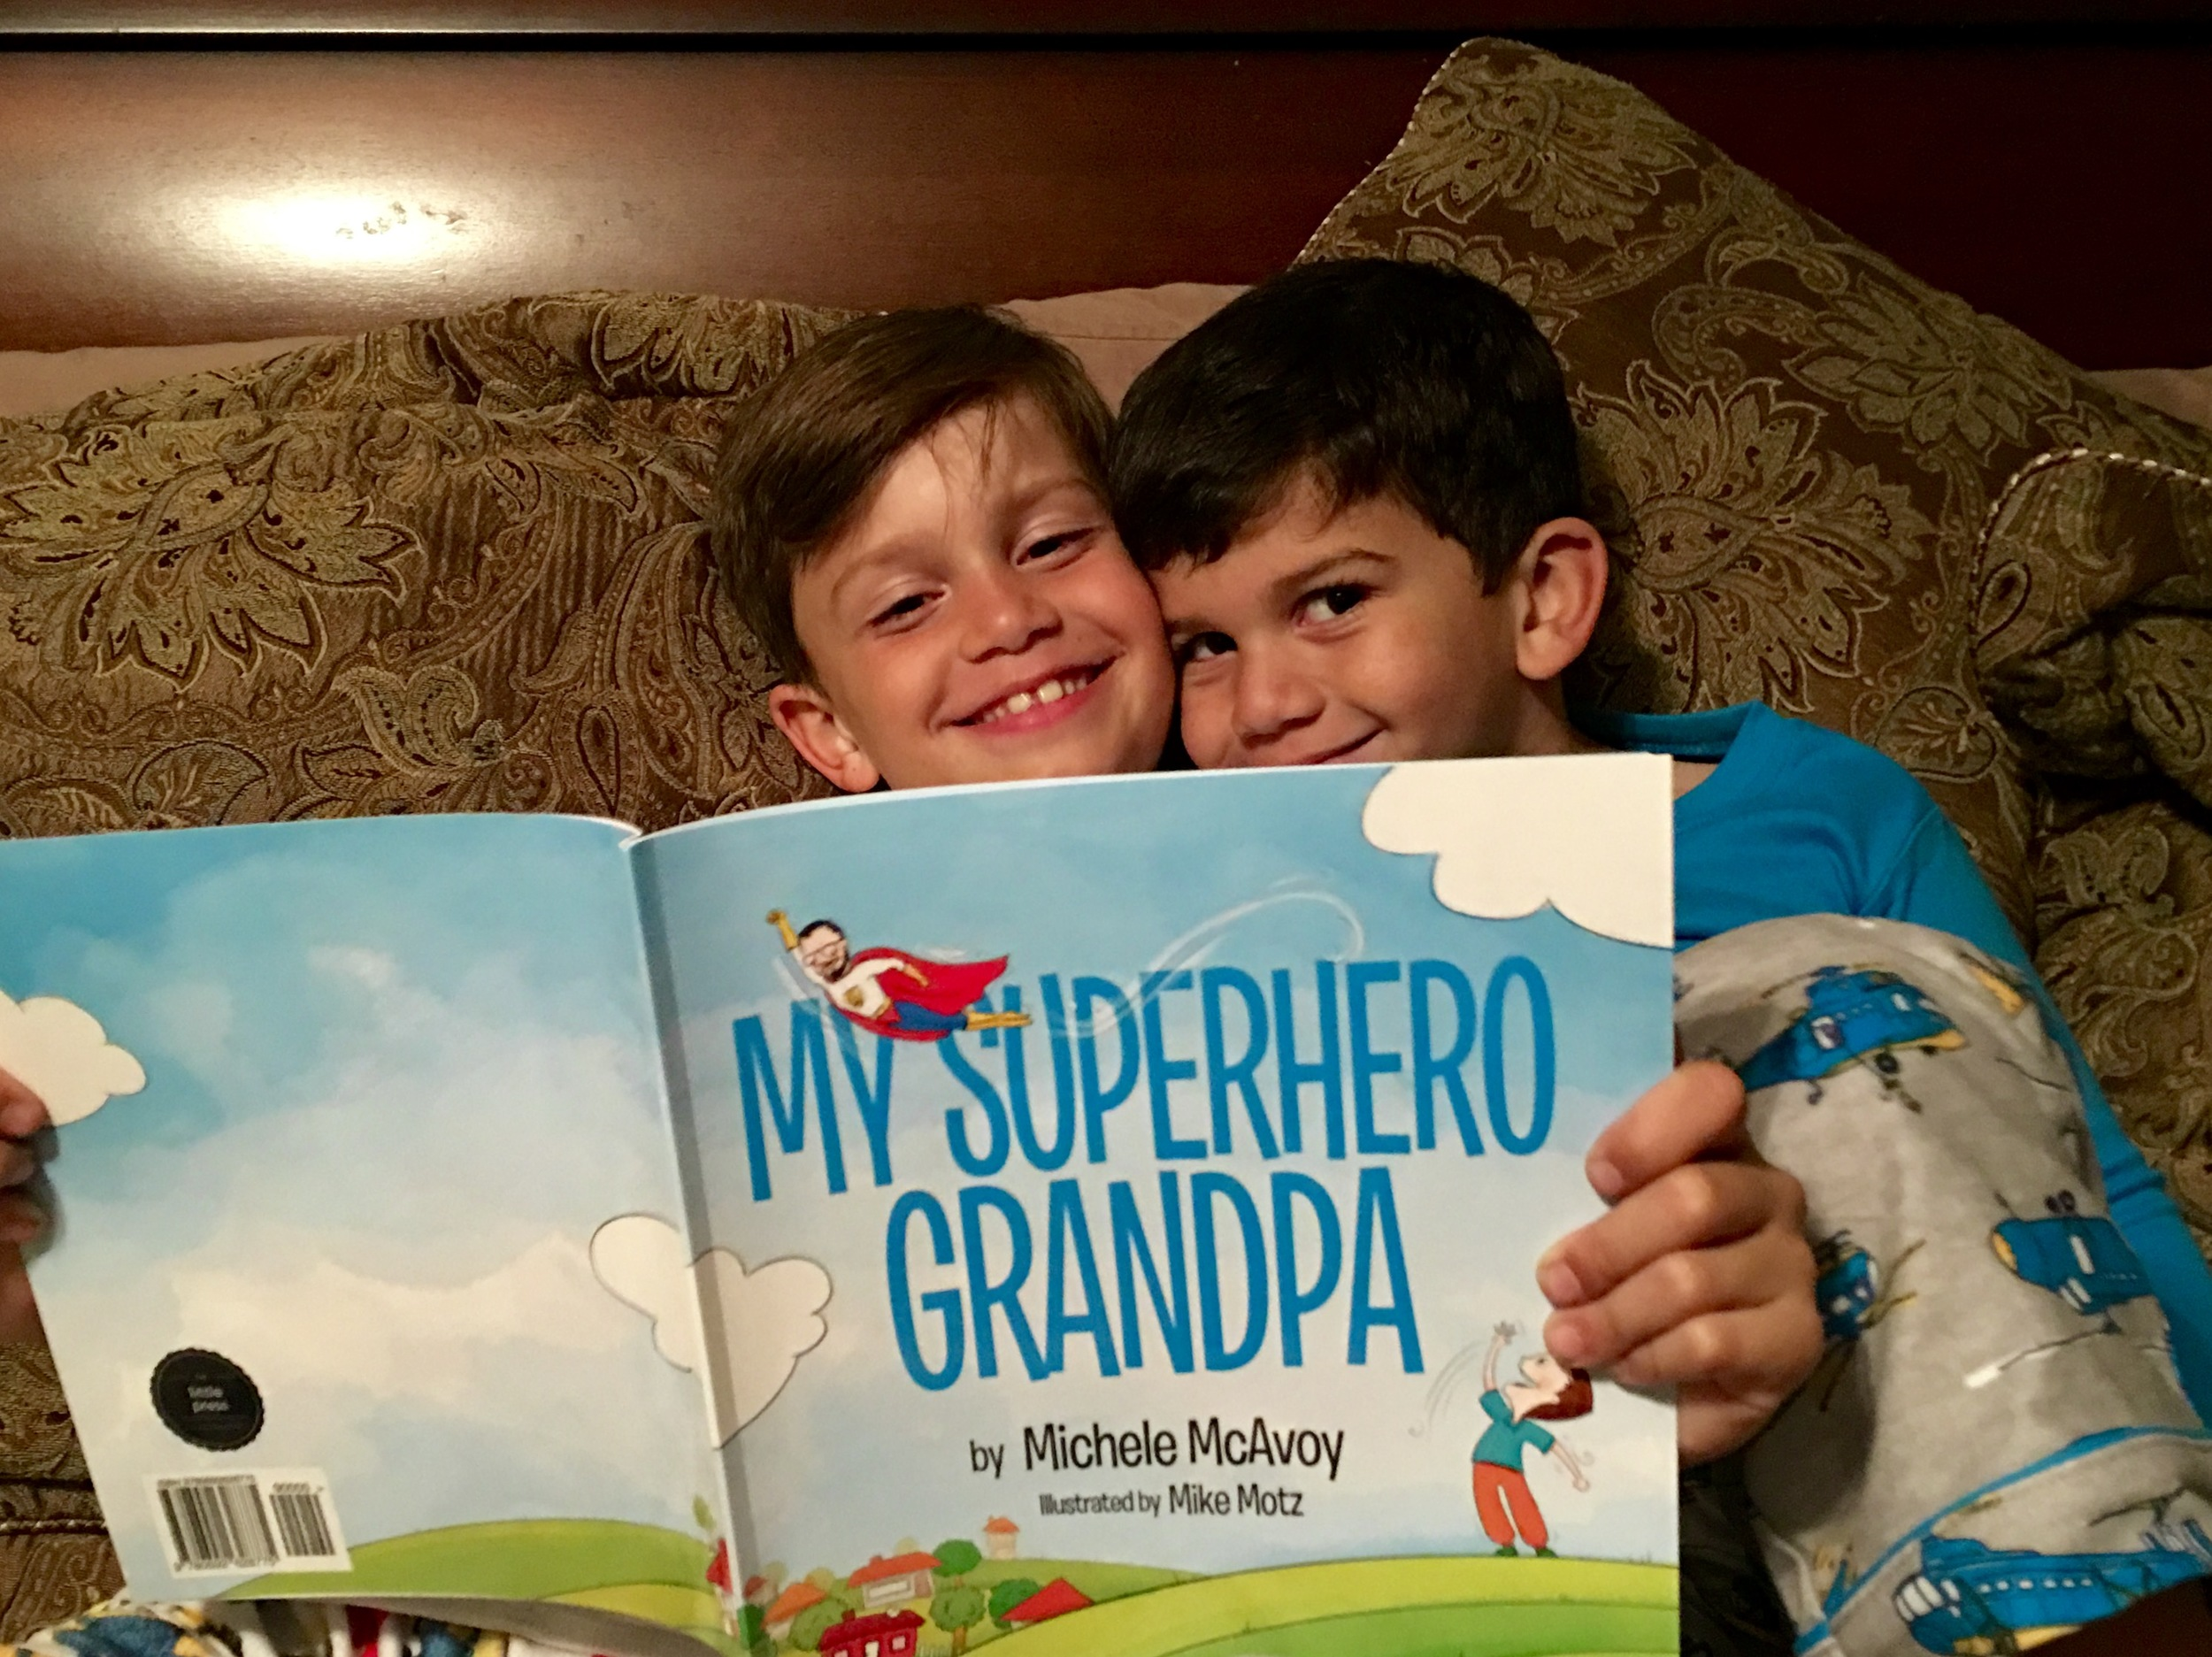 Dominick and Christopher's grandpa became a superhero in 2010